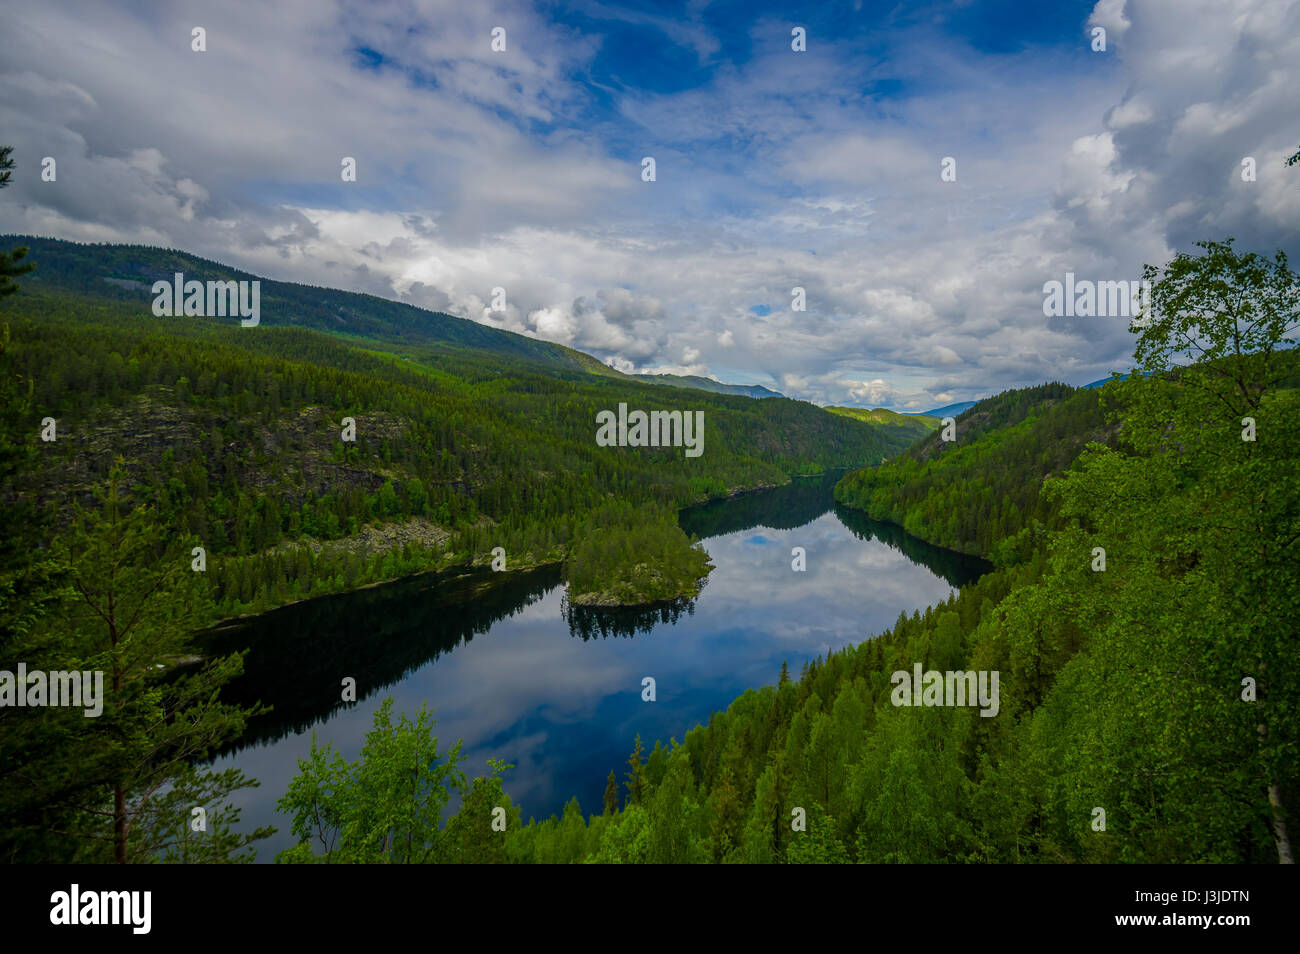 valdres, norway - 6 july, 2015: beautiful view over begna river seen